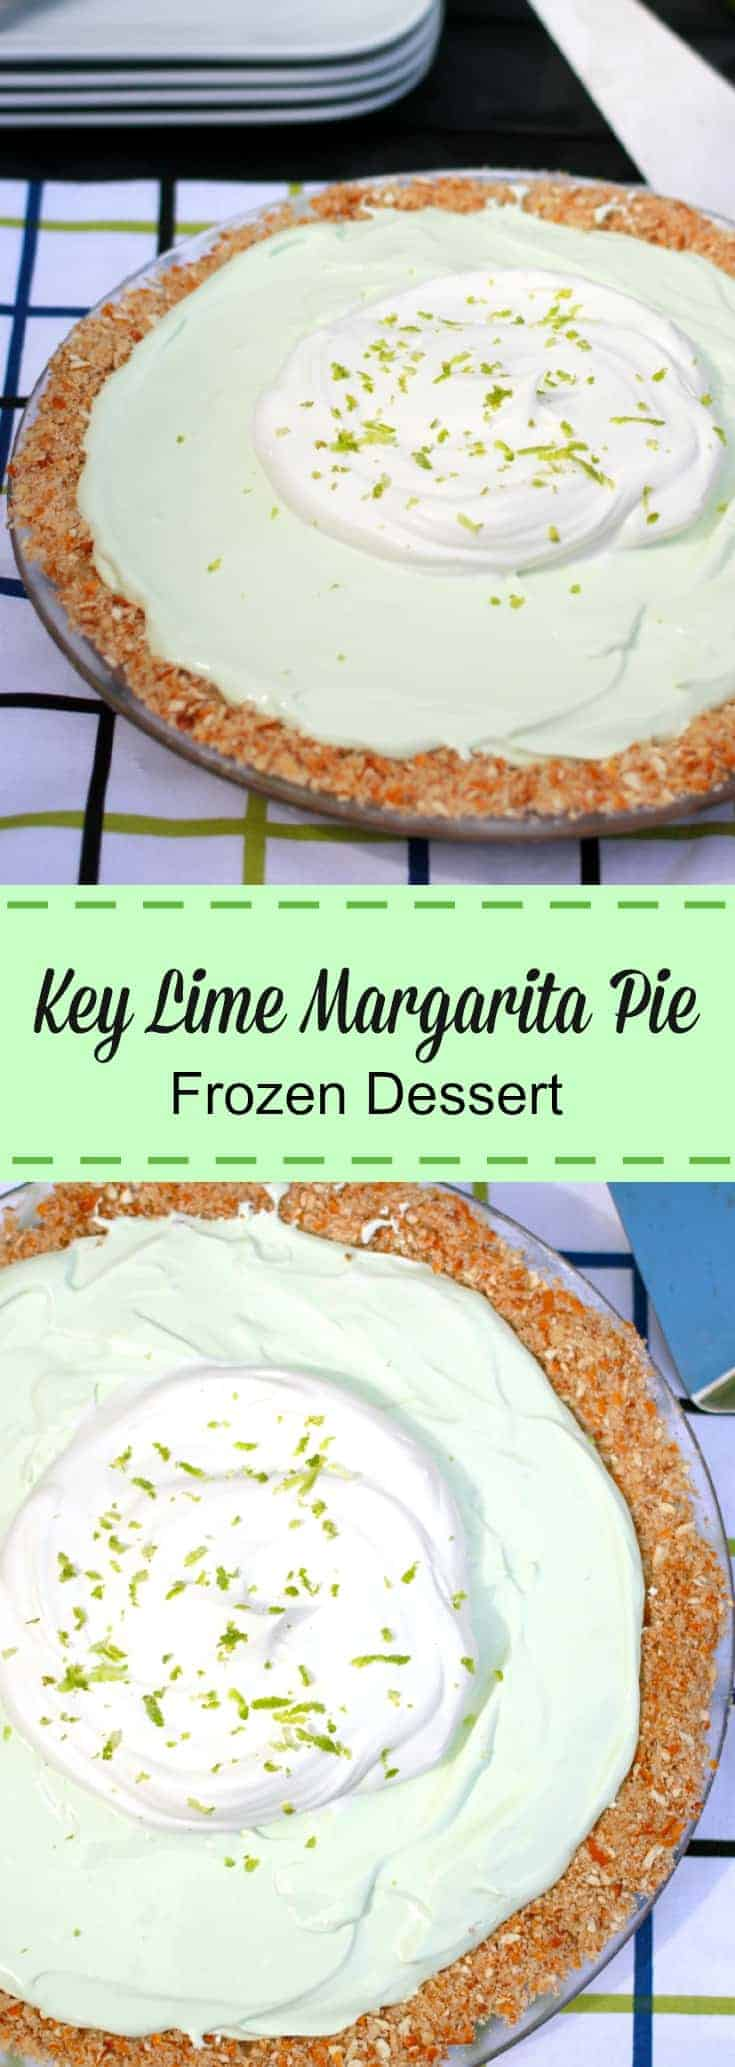 Key Lime Margarita Pie frozen dessert recipe